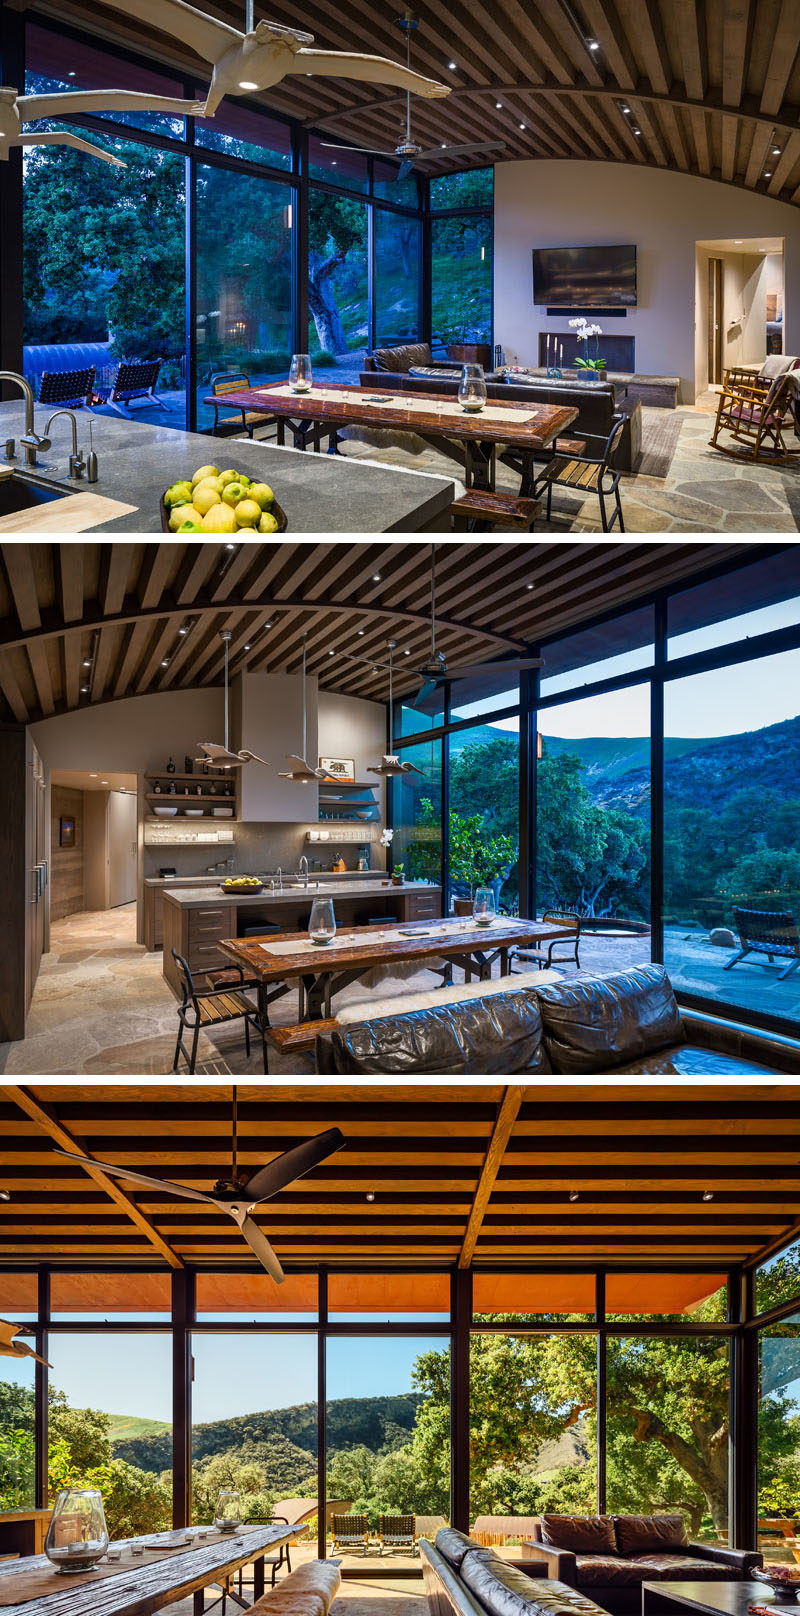 Inside this rustic modern house, Douglas fir beam ceilings draw your eye to the curved ceiling, while the living room, dining room and kitchen all share the same open space. Large windows and sliding doors look out to the valley, and open up to the patio outside. #CurvedCeiling #OpenPlan #InteriorDesign